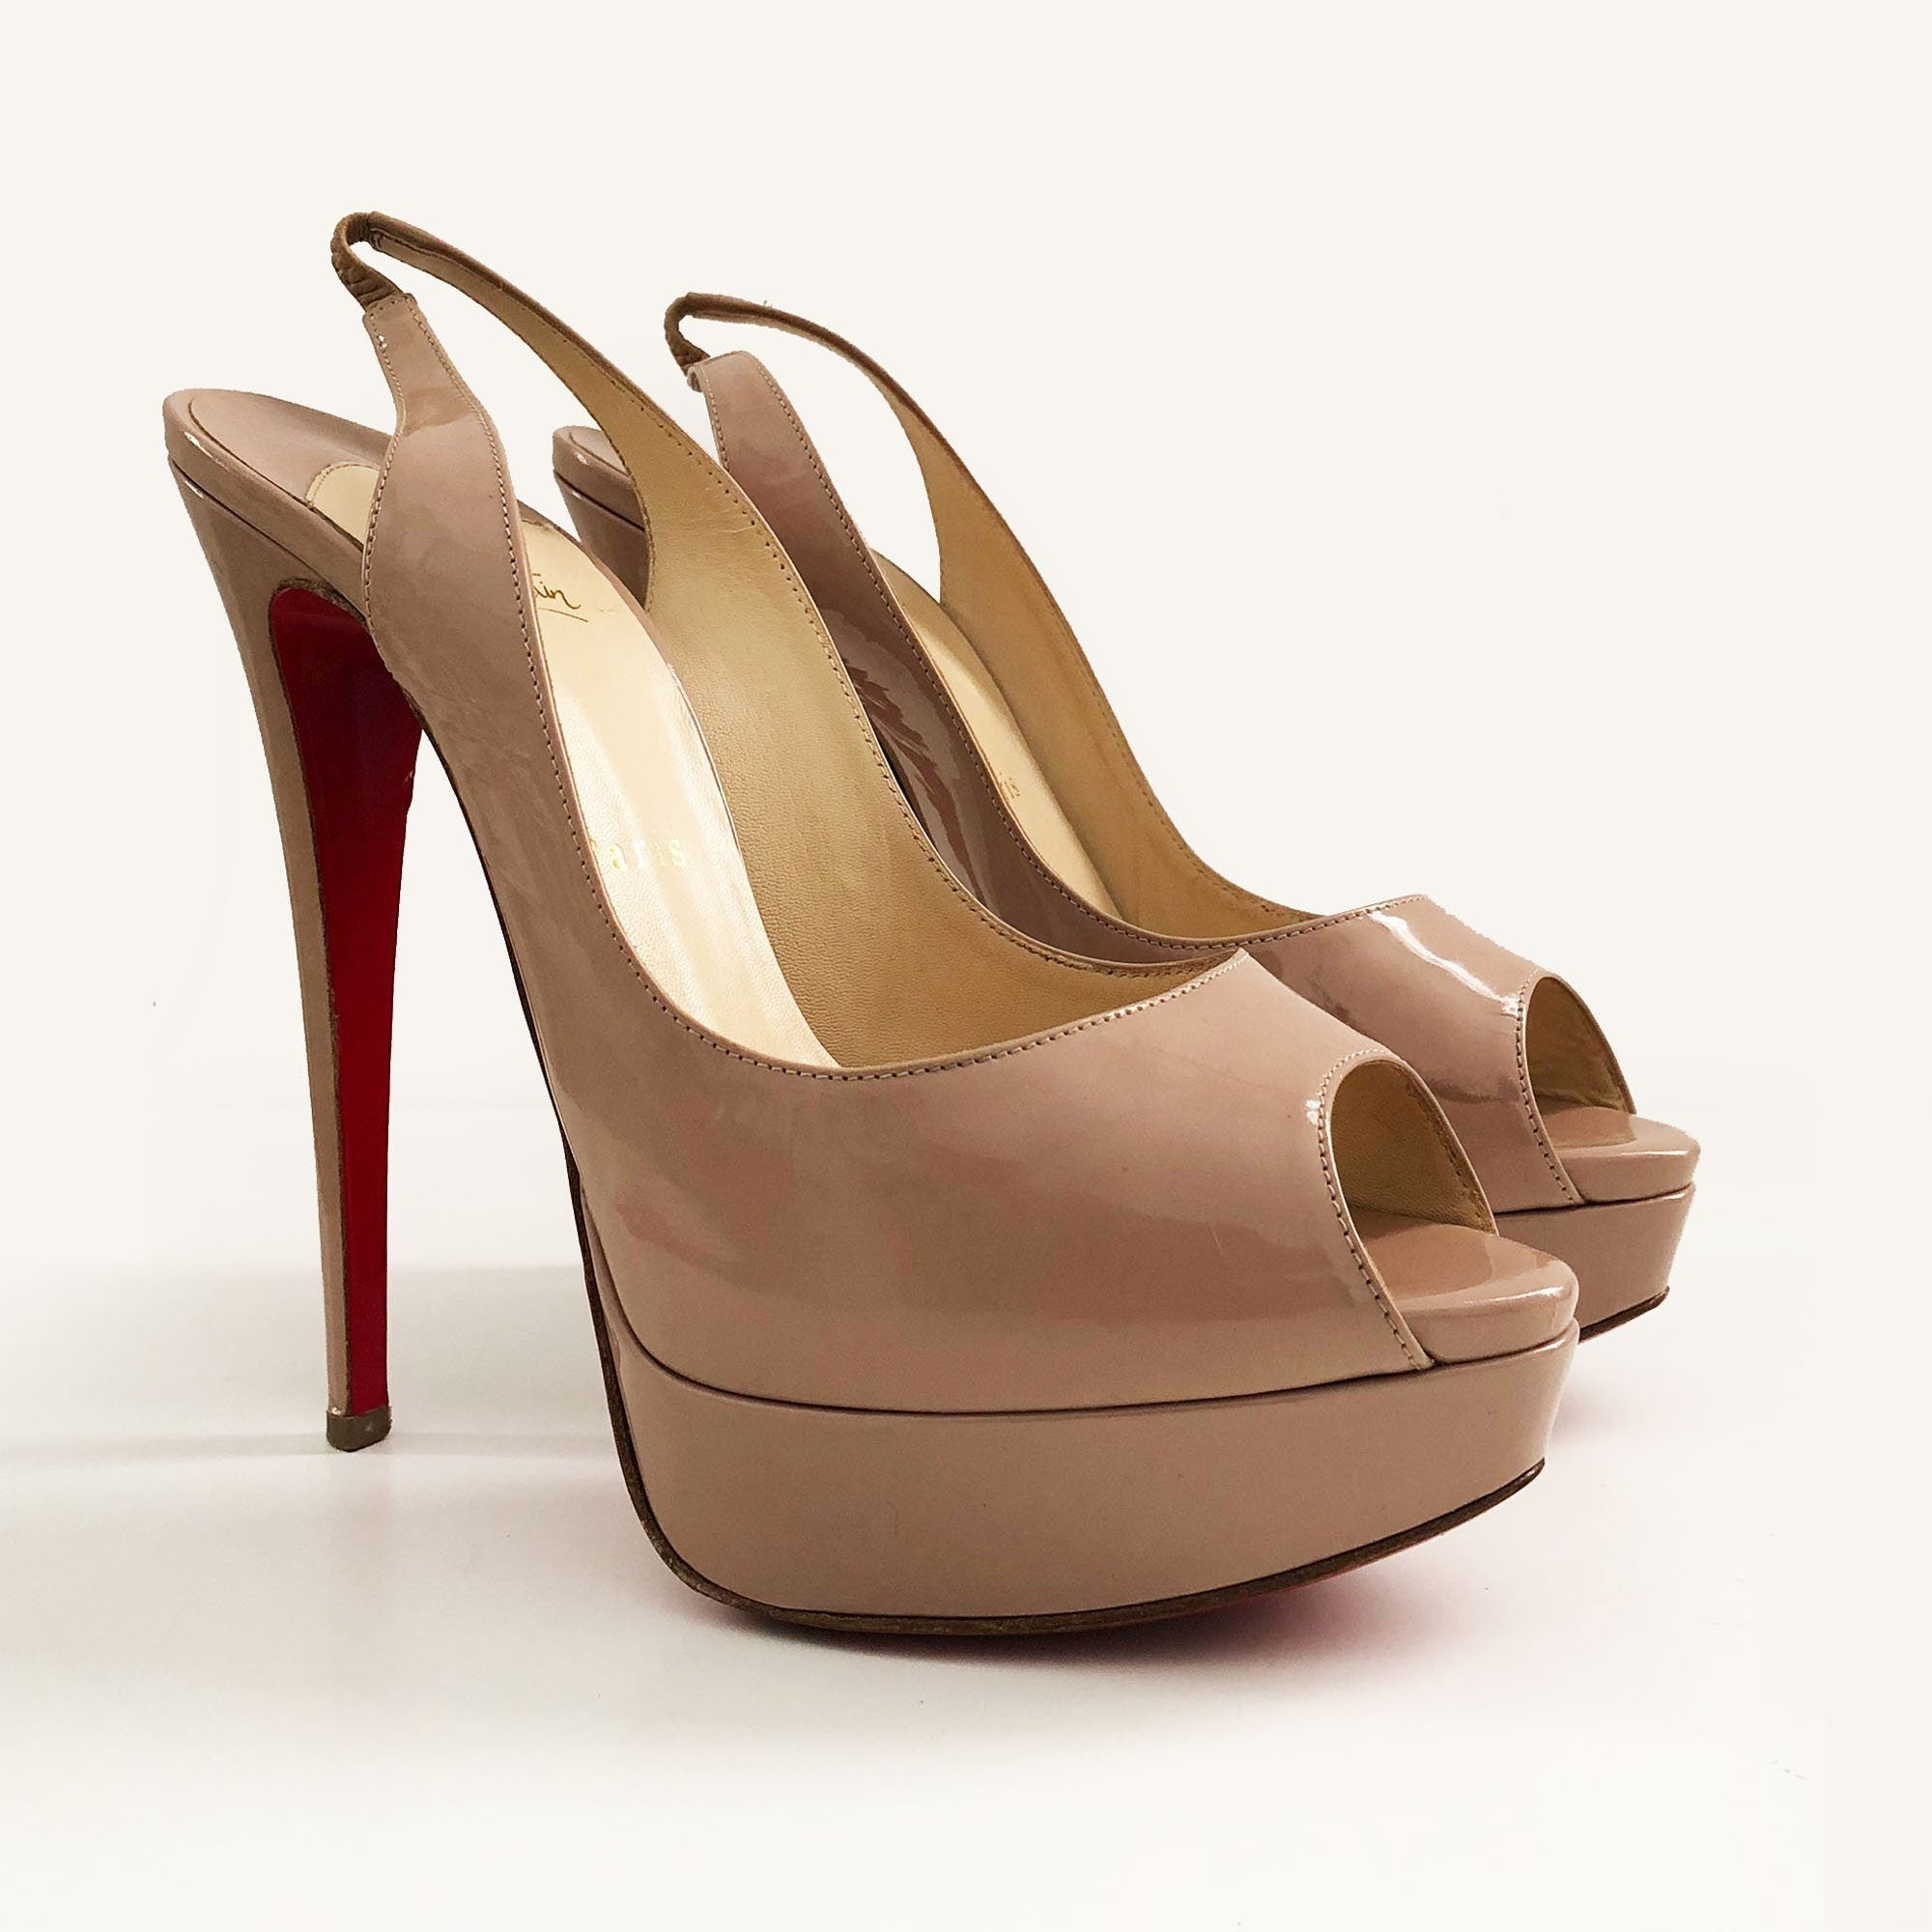 Christian Louboutin Nude Patent Leather Lady Peep Toe Slingback Sandals